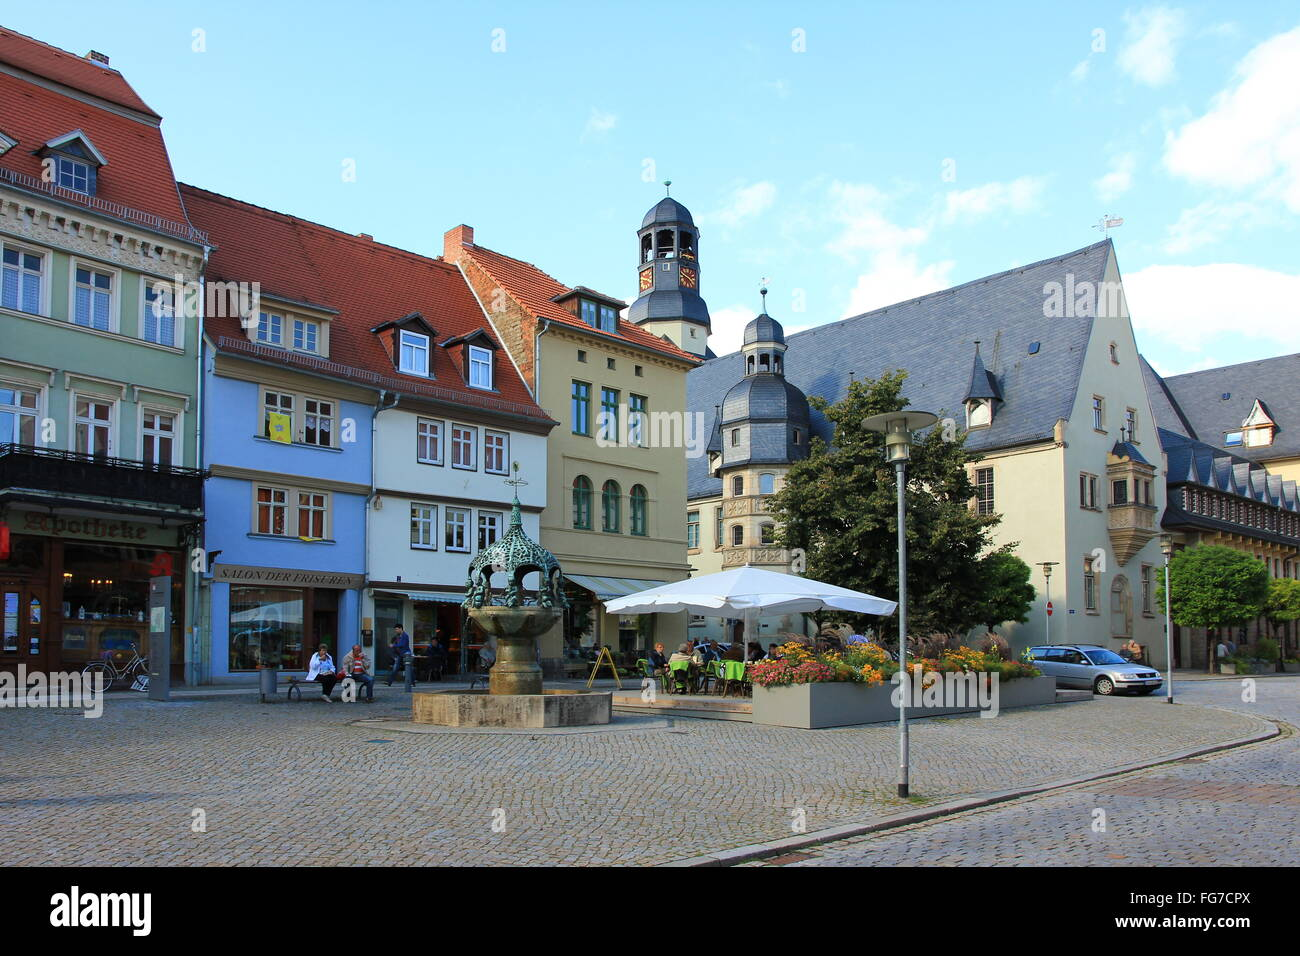 geography / travel, Germany, Saxony-Anhalt, Aschersleben, city hall, Additional-Rights-Clearance-Info-Not-Available - Stock Image